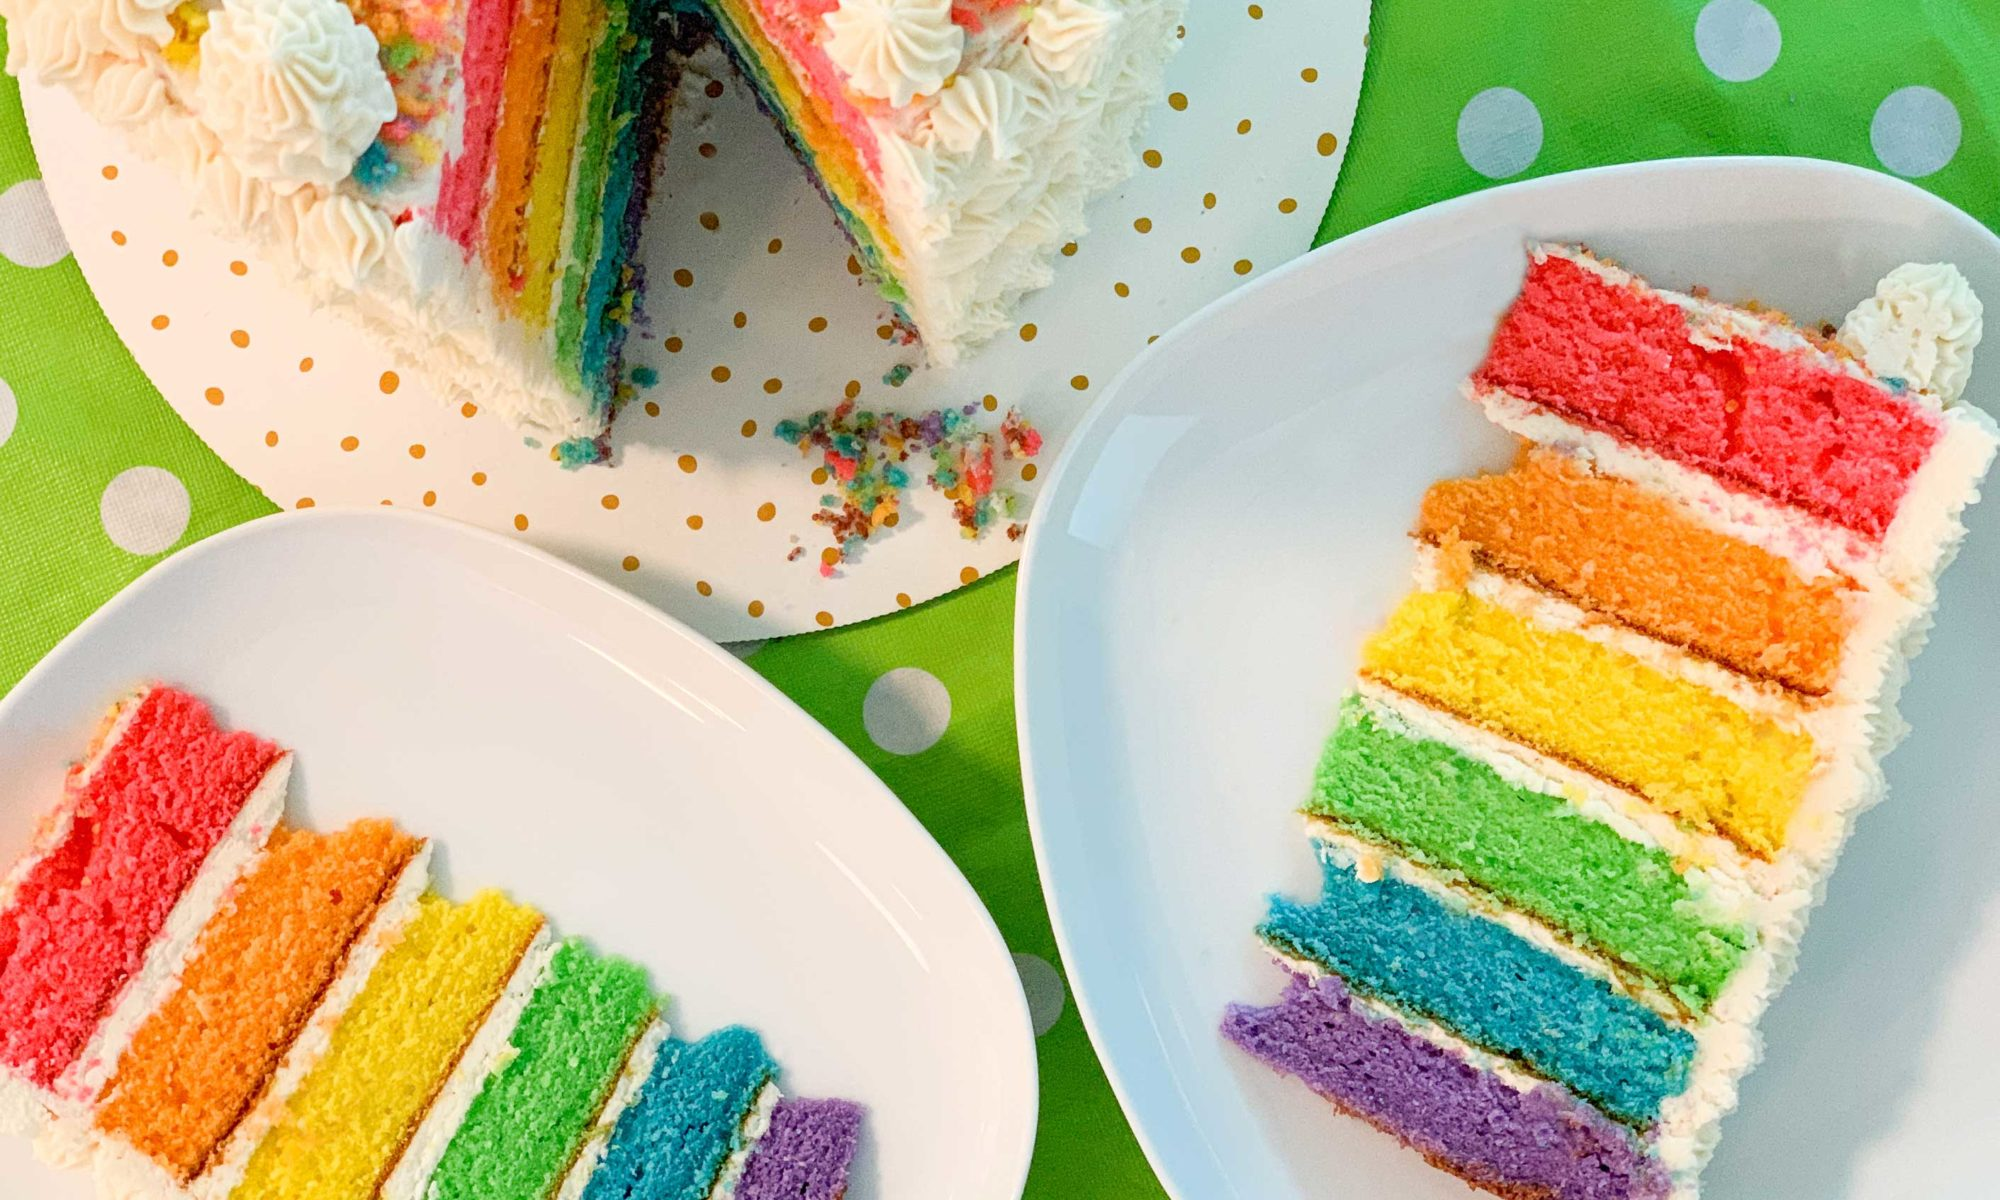 overhead shot of the rainbow cake, with two slices cut out and on plates next to it